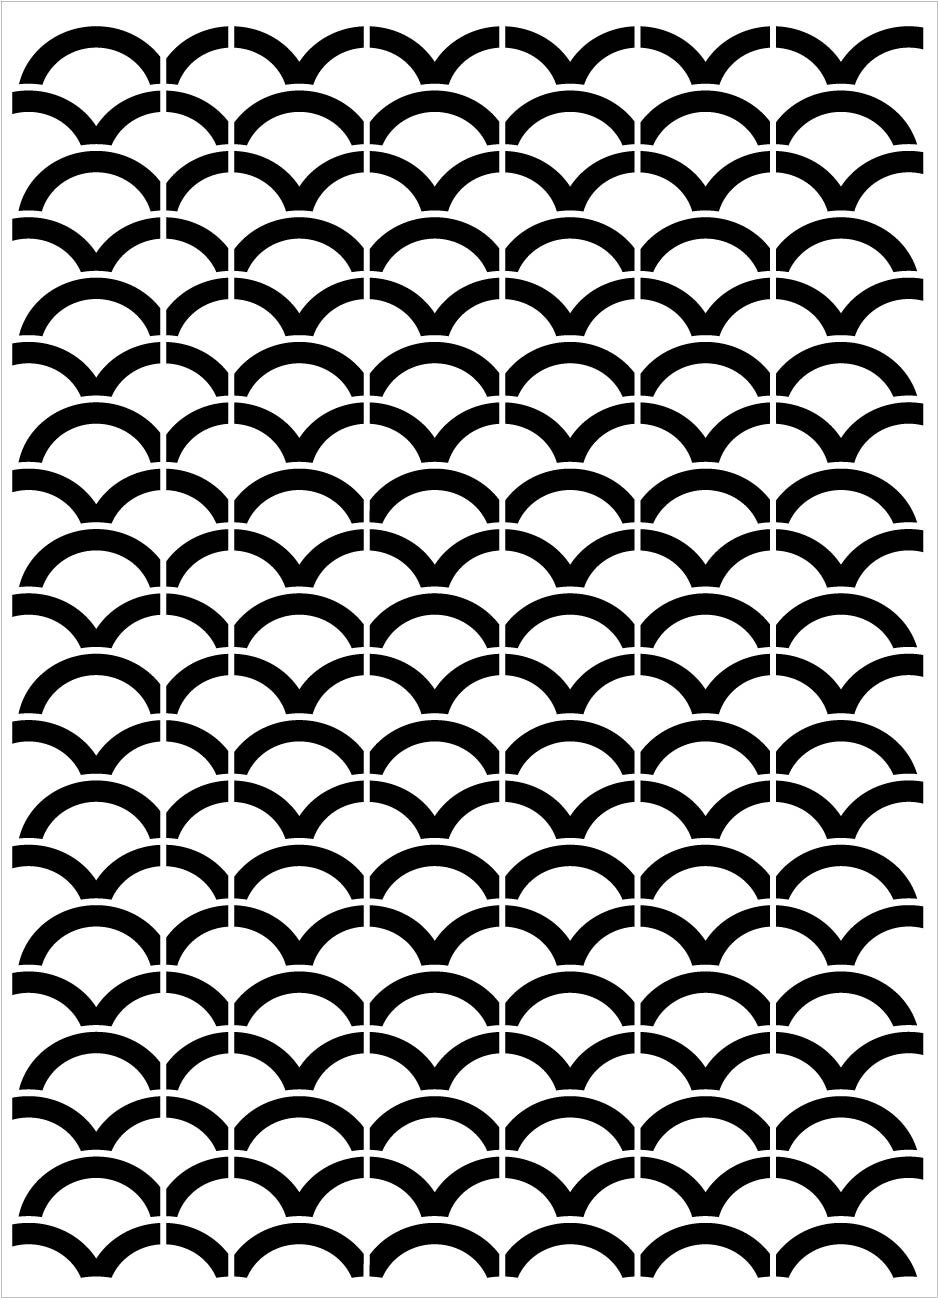 Scales - Repeatable Pattern Stencil